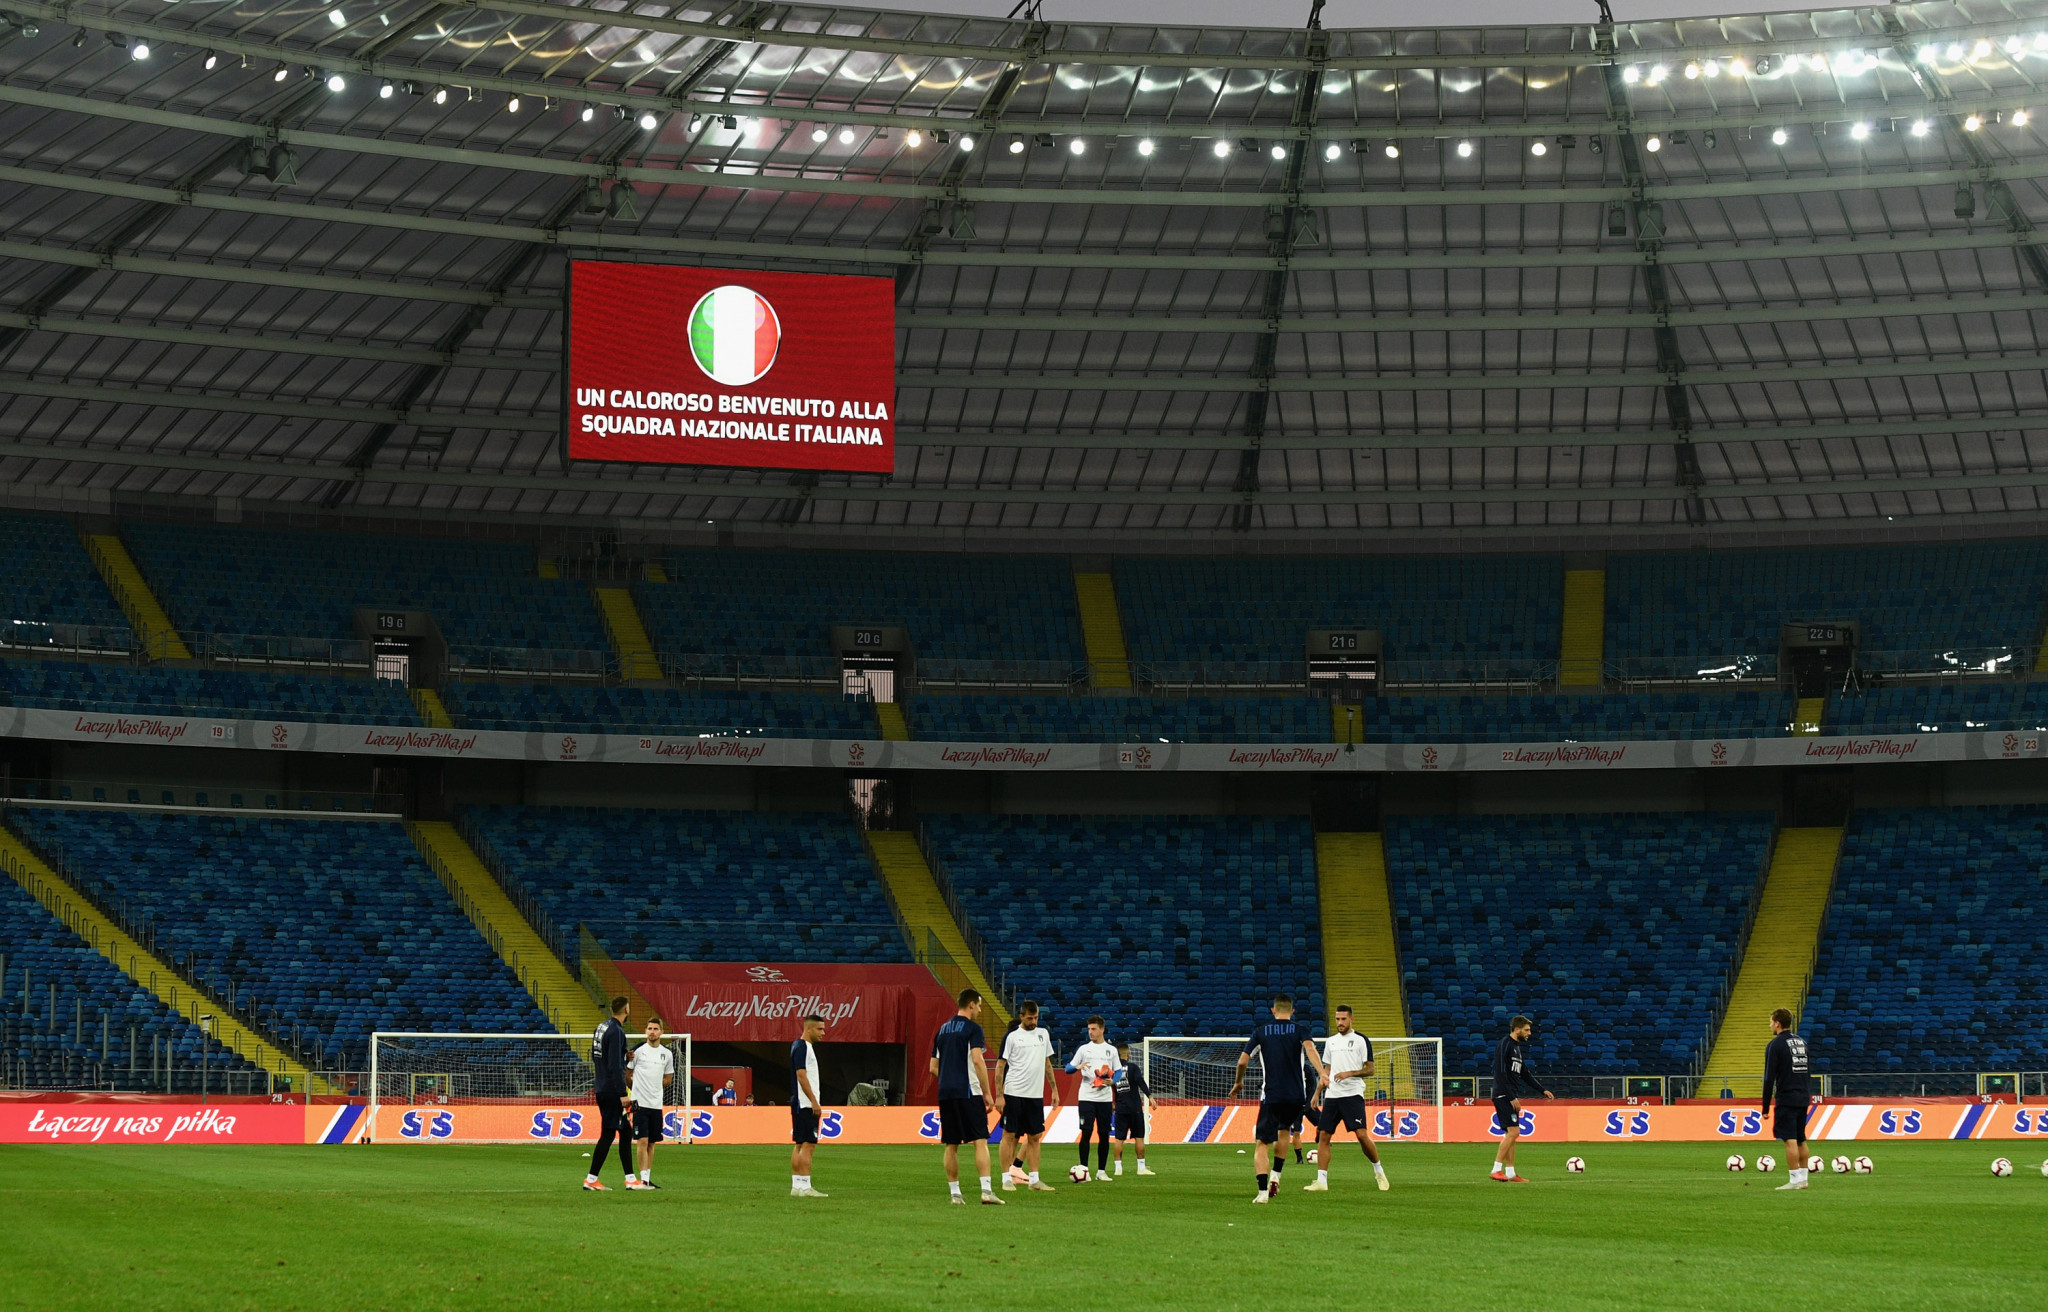 The Silesian Stadium - one of the venues for UEFA Euro 2012 - is penciled in to host athletics at the 2023 European Games ©Getty Images